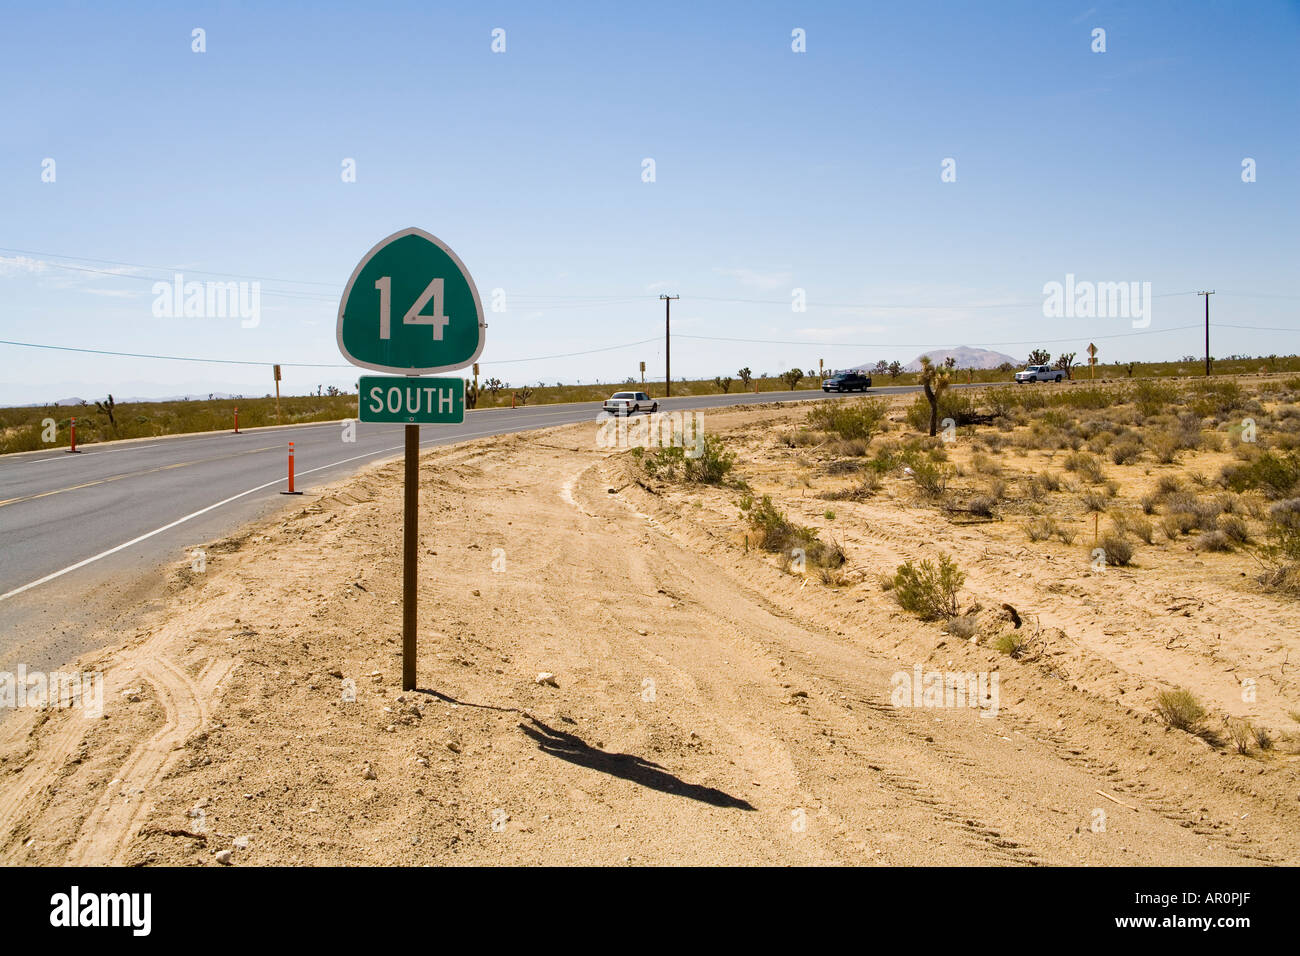 Highway 14 junction South, Antelope Valle Freeway, Midland Trail, California, USA - Stock Image